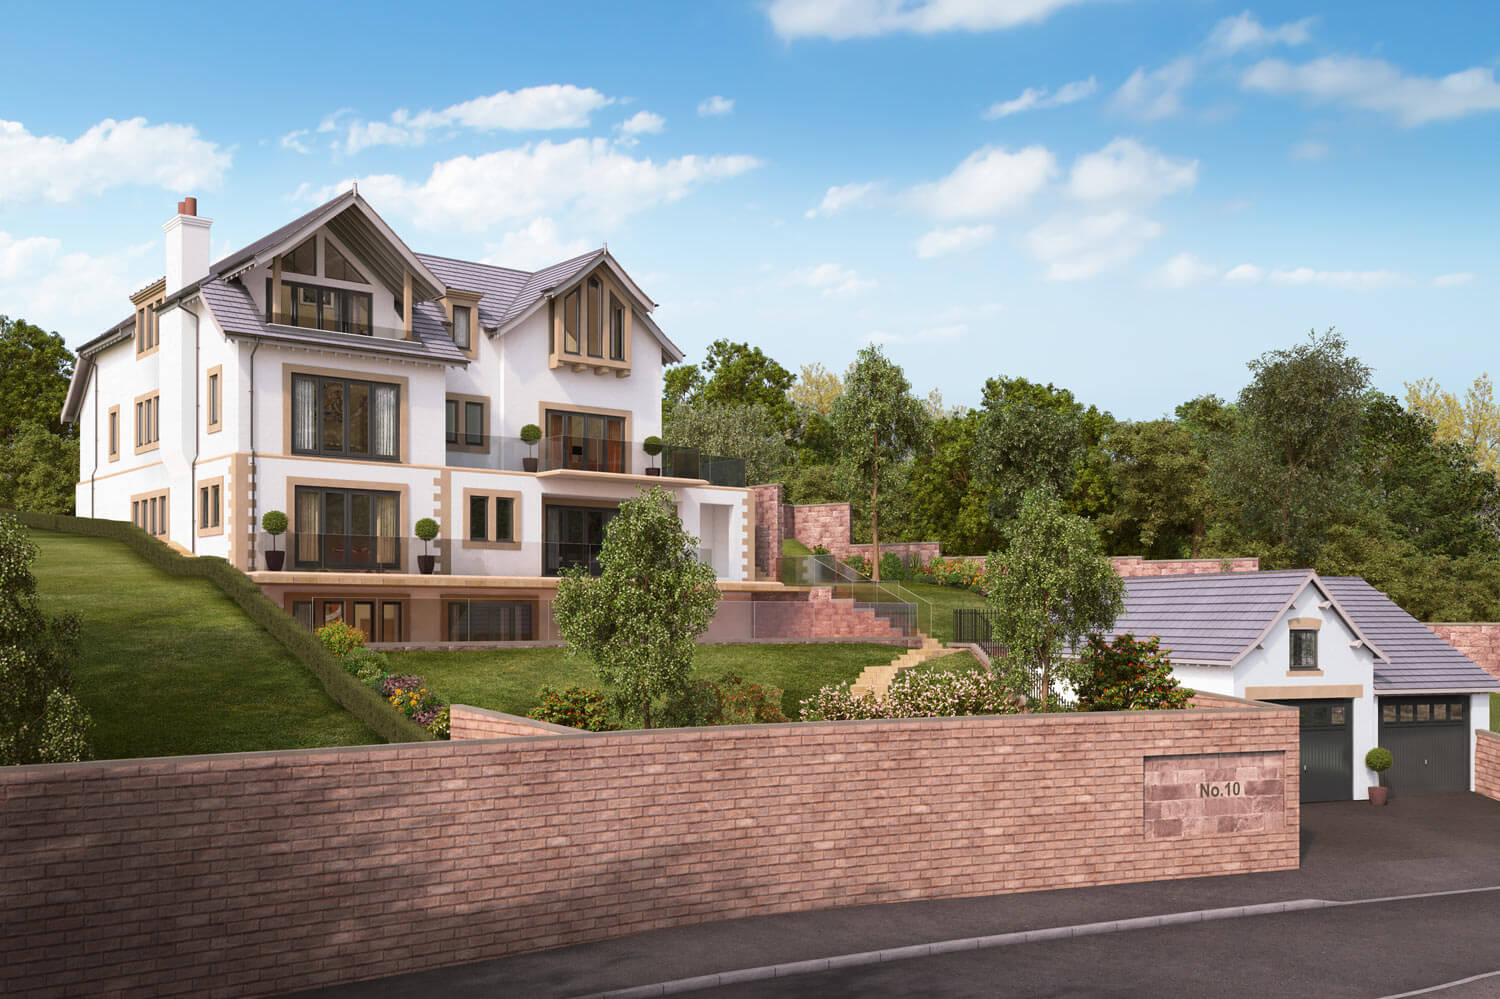 Exterior CGI property shot showing the full manor building, with large landscapes lawns, mixed planting and a tall brick wall to the front.